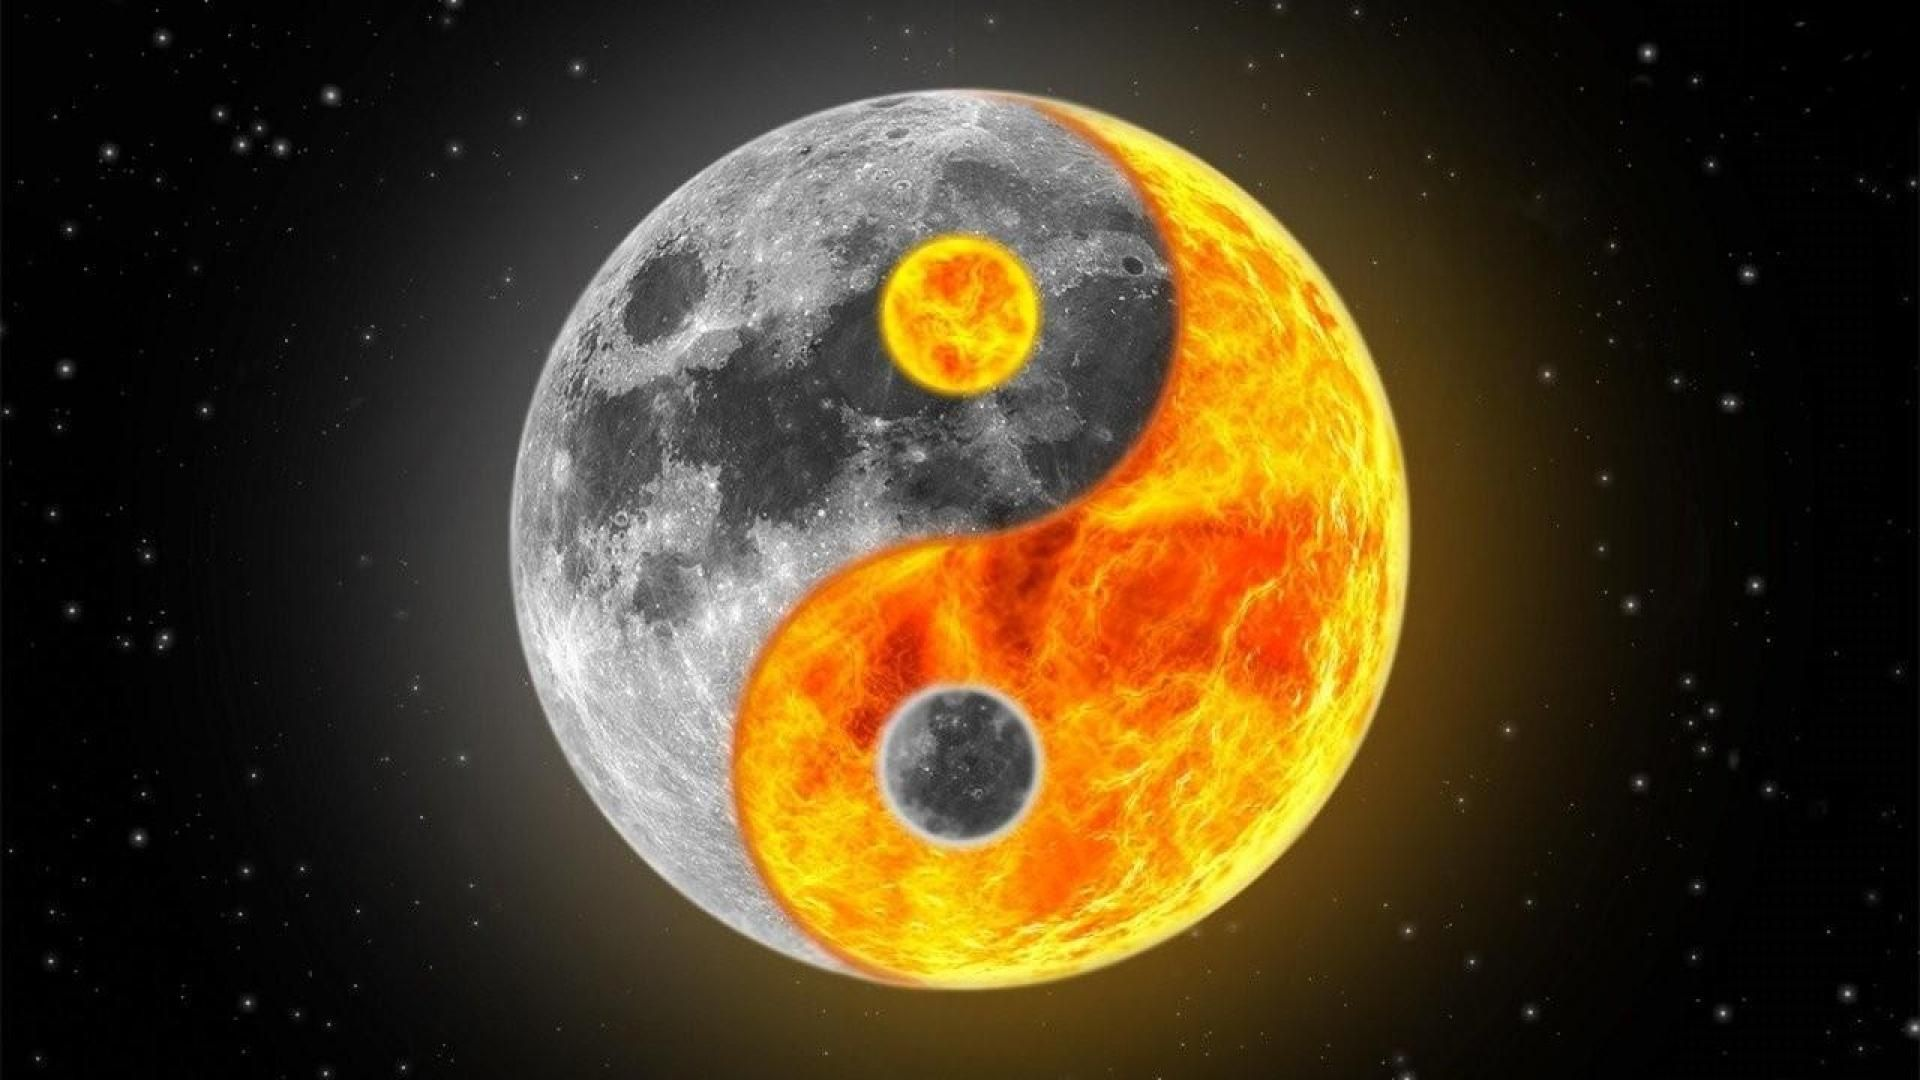 Yin and Yang Wallpaper (2880x1800 download link in